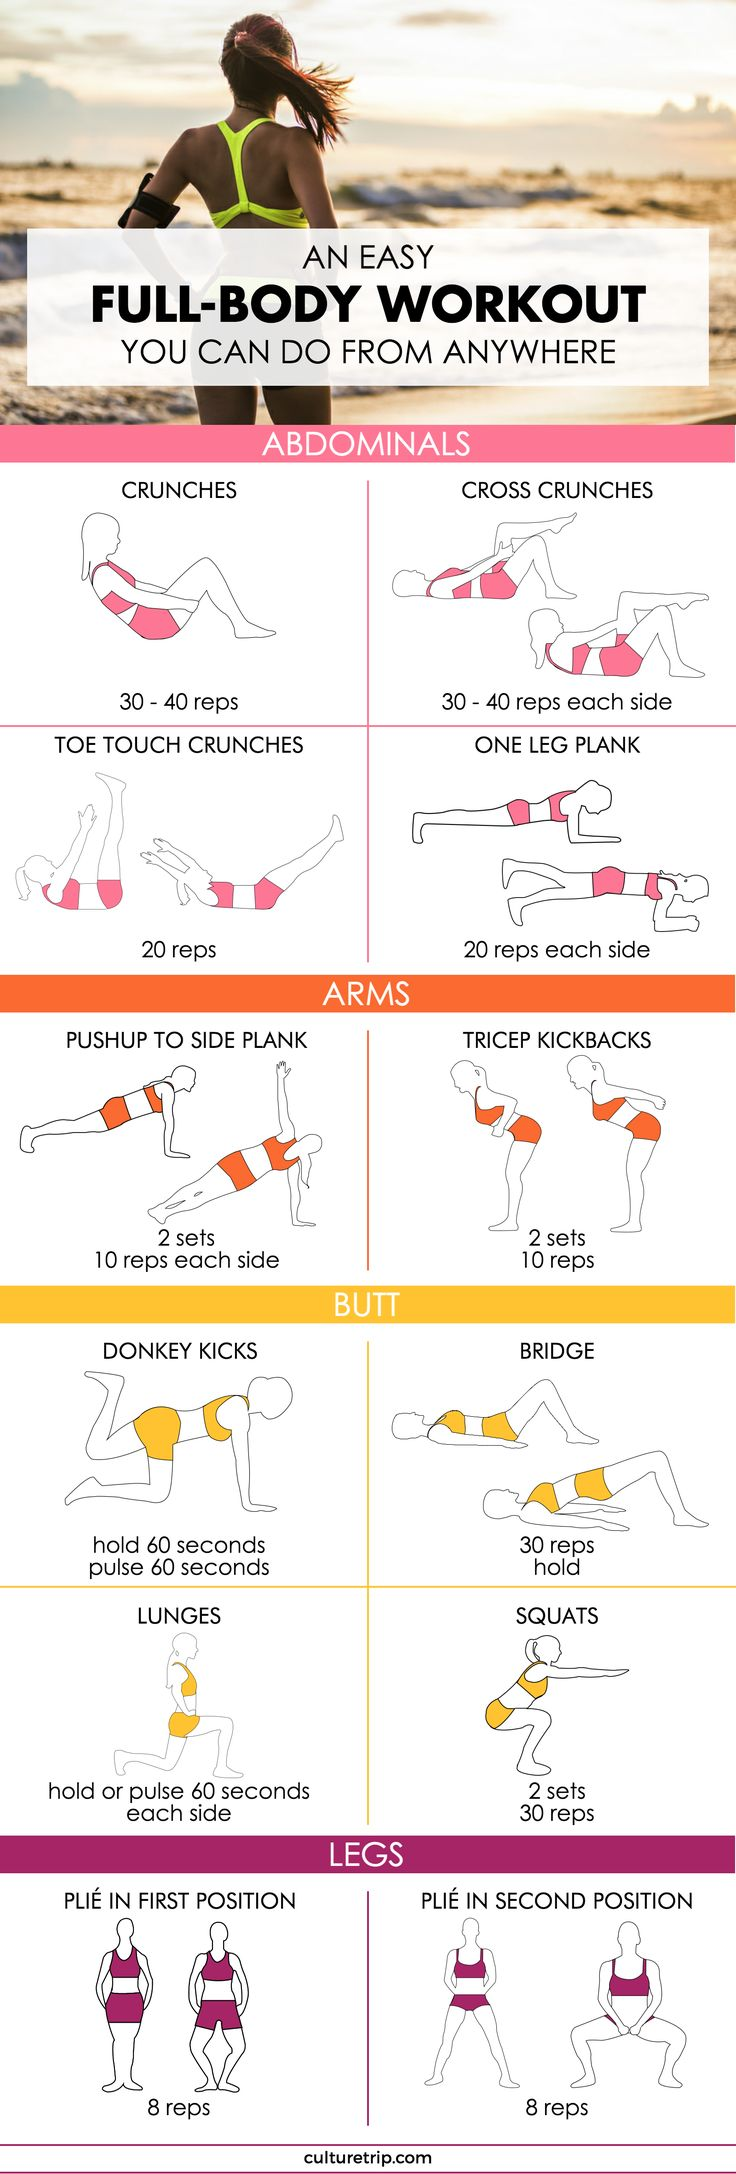 An Easy Full-Body Workout You Can Do From Anywhere|Pinterest: @theculturetrip